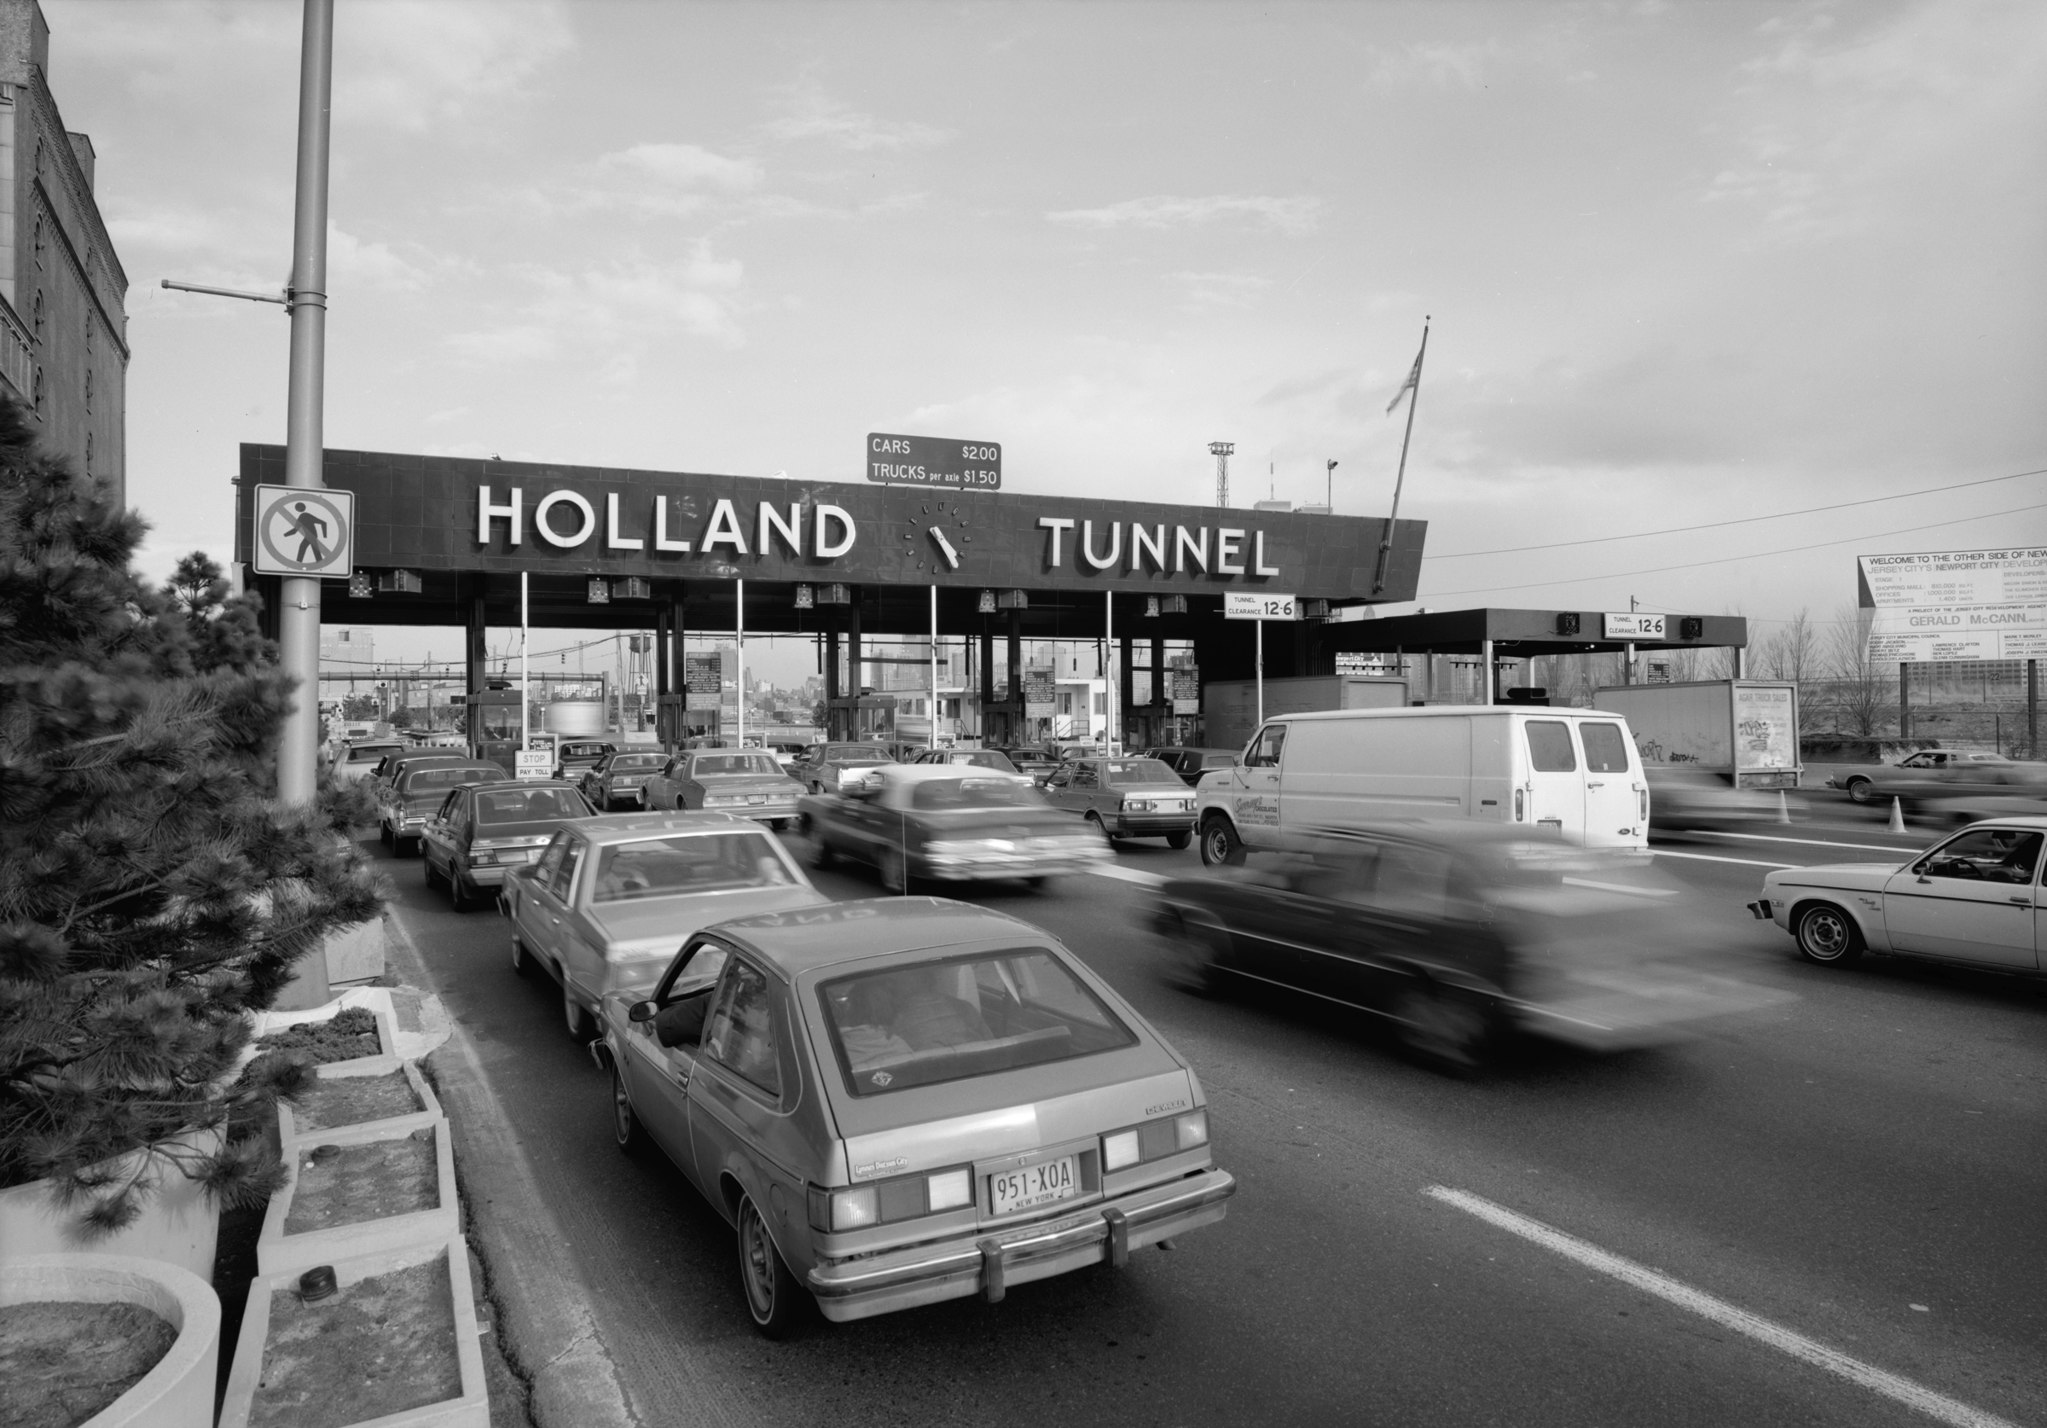 Holland Tunnel Toll Plaza in Jersey City in 1985 will be a thing of the past as cashless tolling comes into play